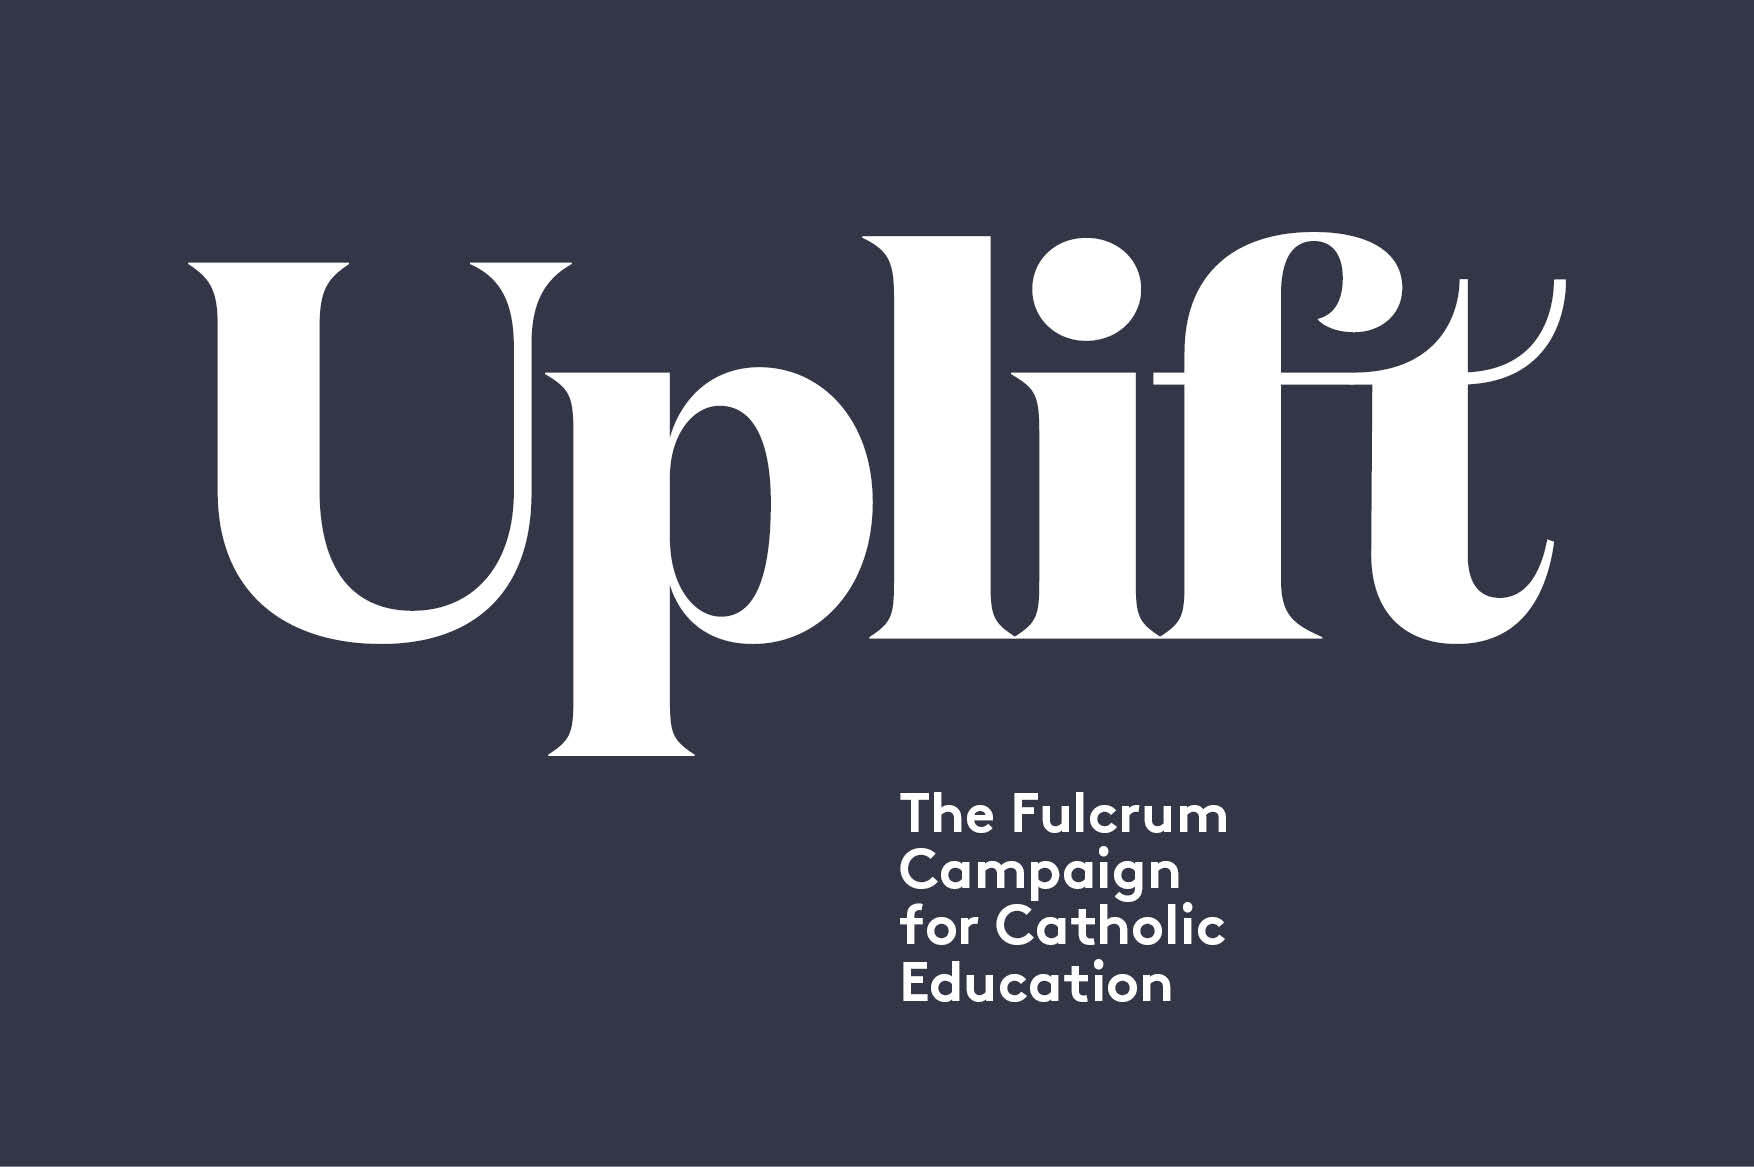 Uplift The Fulcrum Campaign for Catholic Education